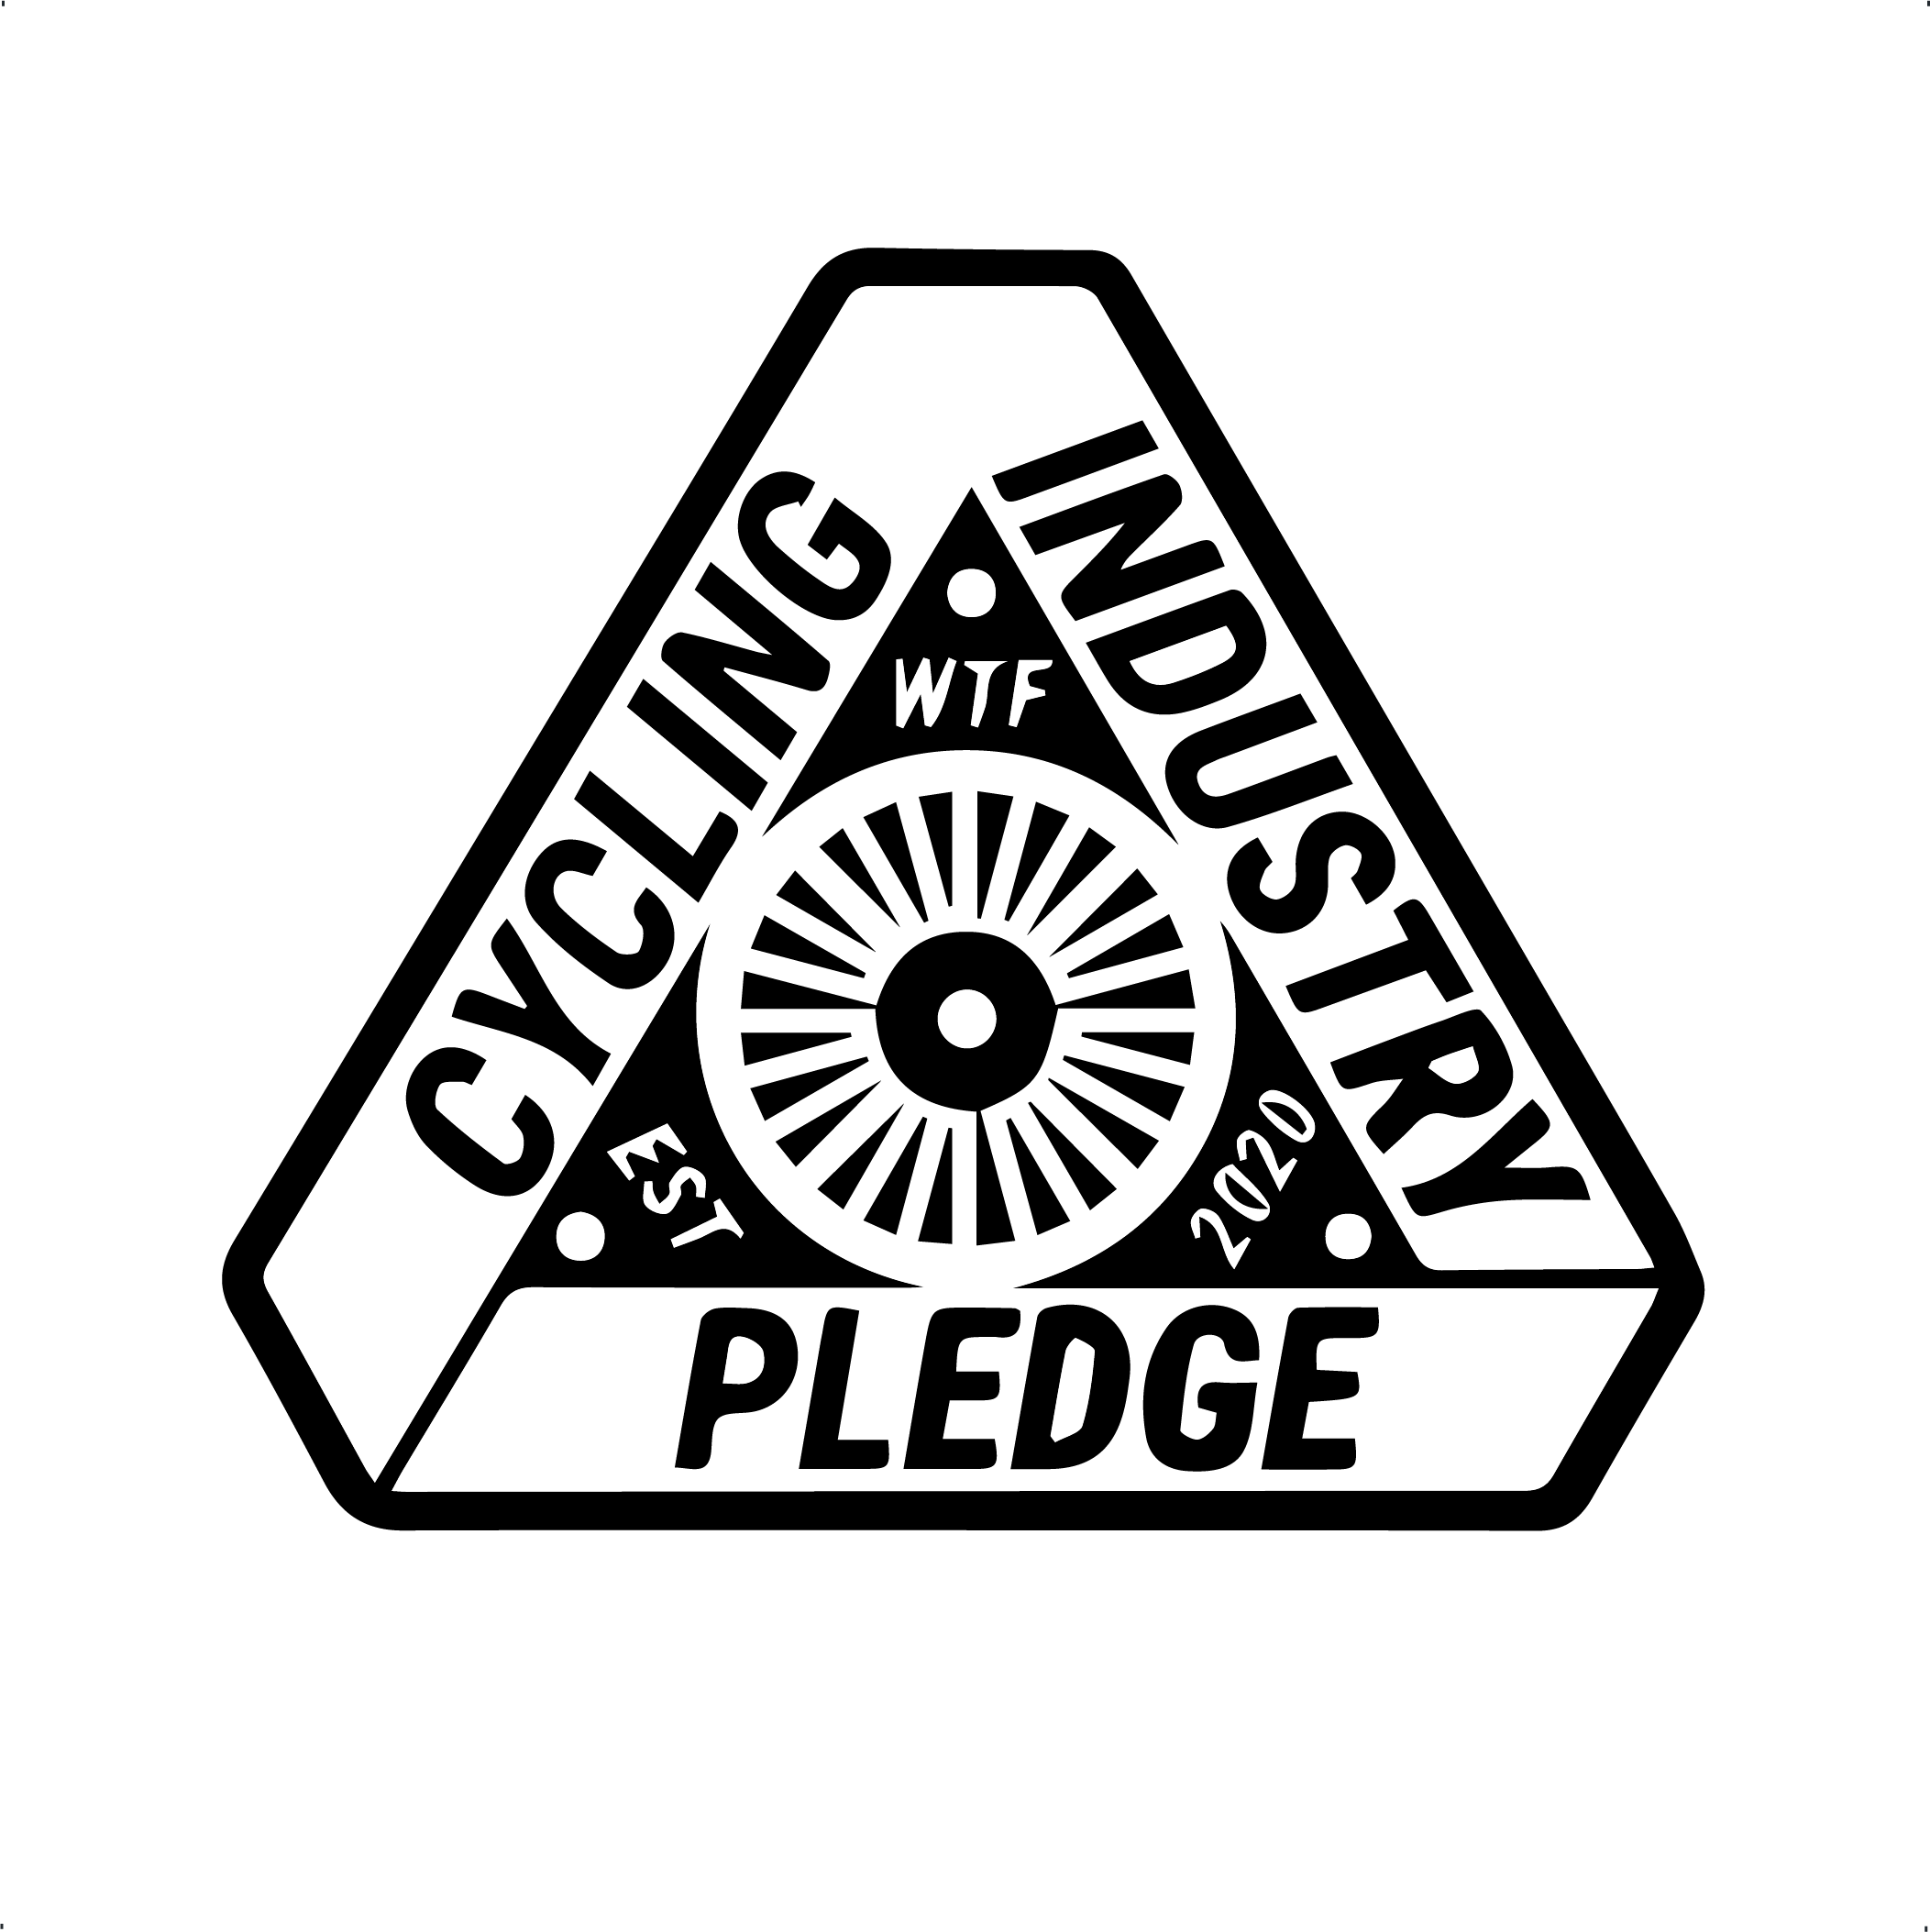 WTF Cycling Pledge